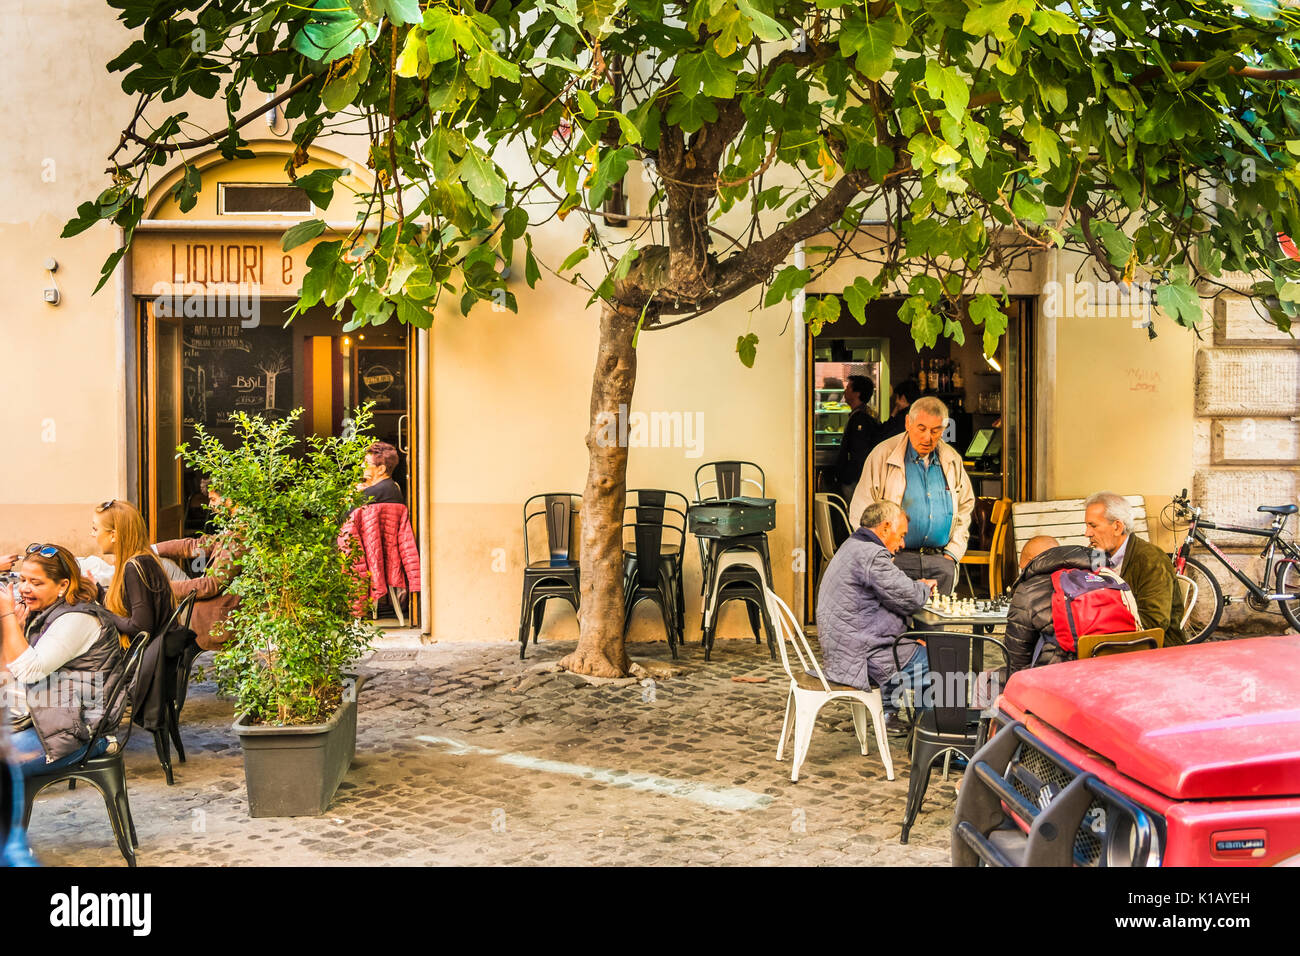 street scene, old men playing chess at a sidewalk cafe in the historic city center of rome - Stock Image